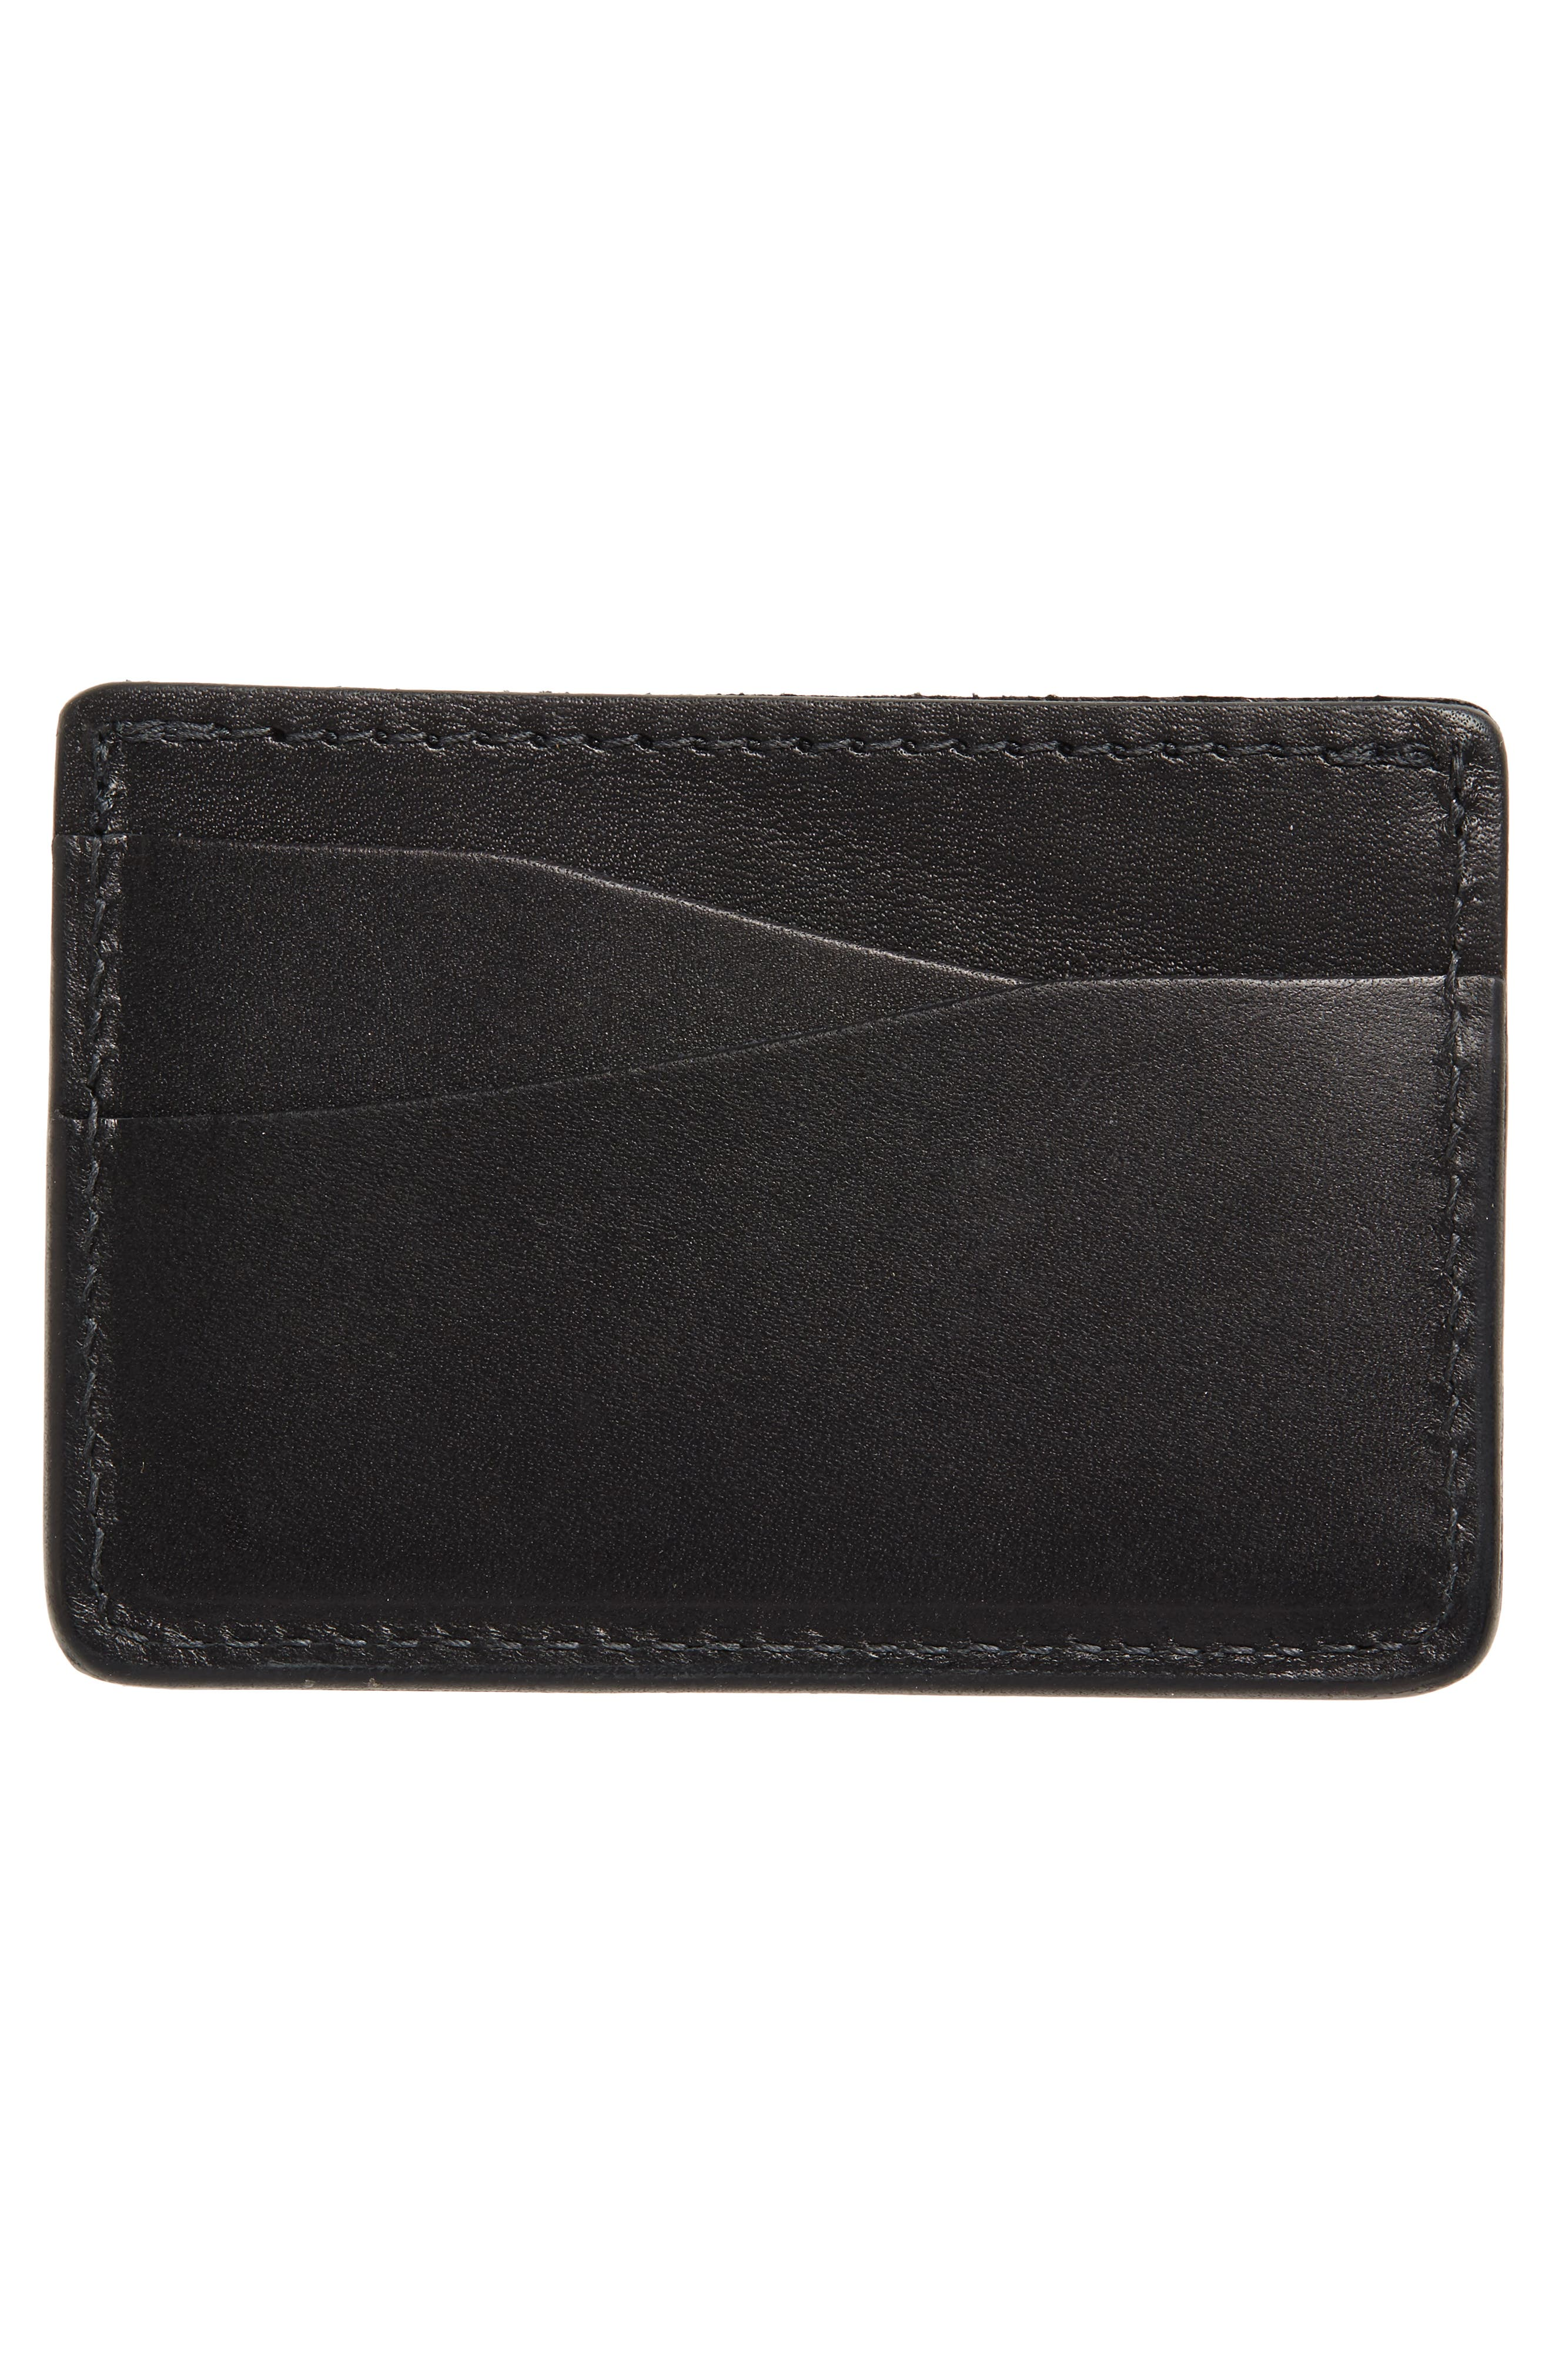 Journeyman Leather Card Case,                             Alternate thumbnail 2, color,                             BLACK